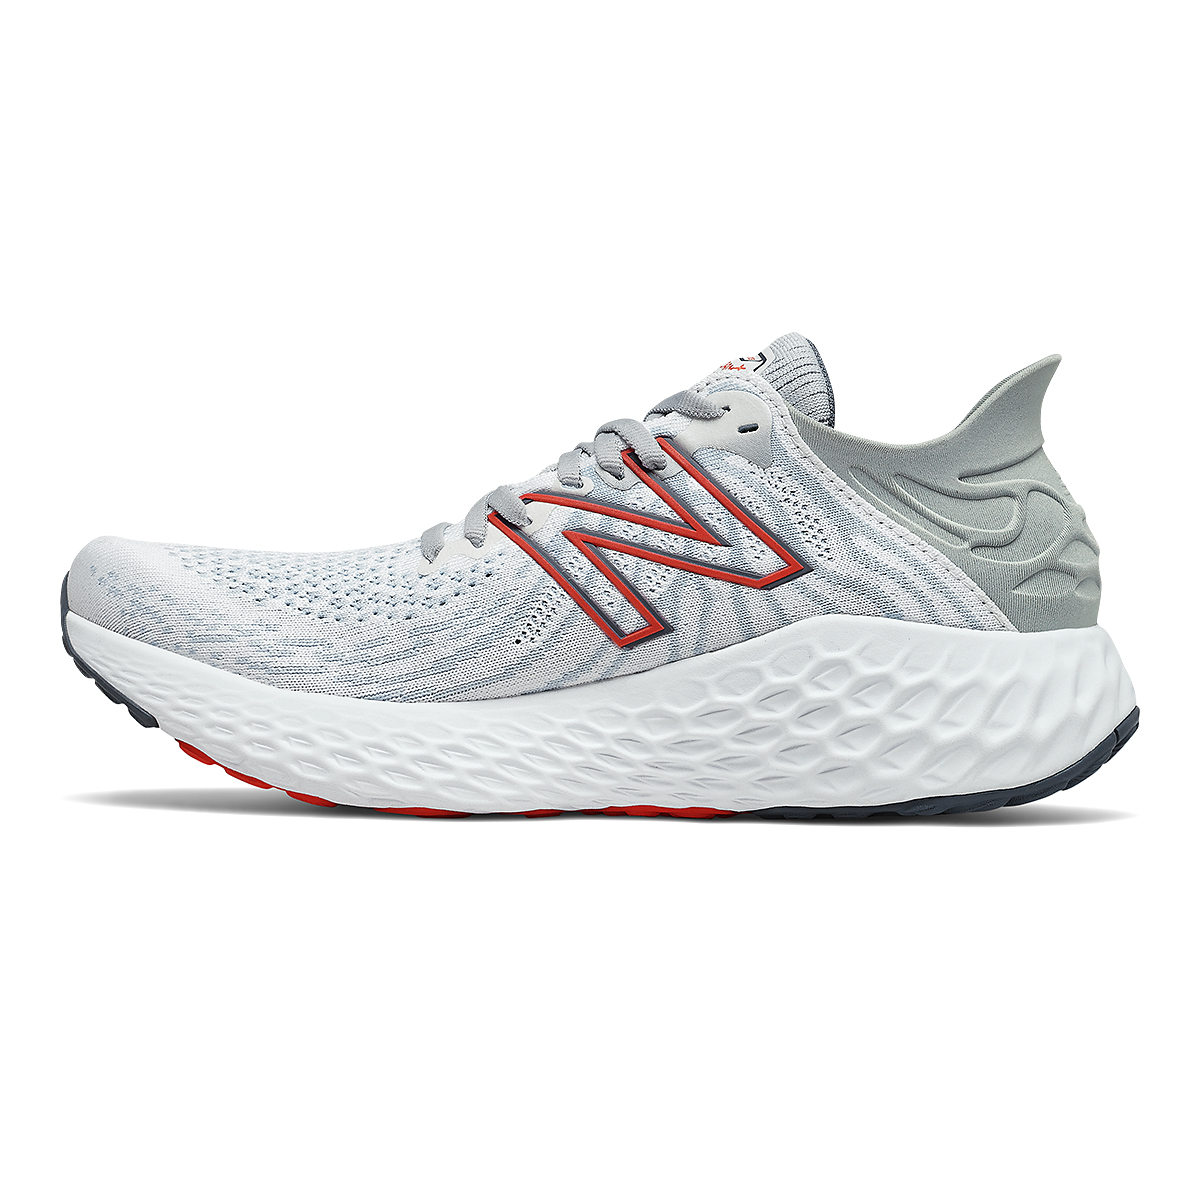 Men's New Balance 1080v11 Running Shoe - Color: White/Ghost Pepper - Size: 7 - Width: Wide, White/Ghost Pepper, large, image 2